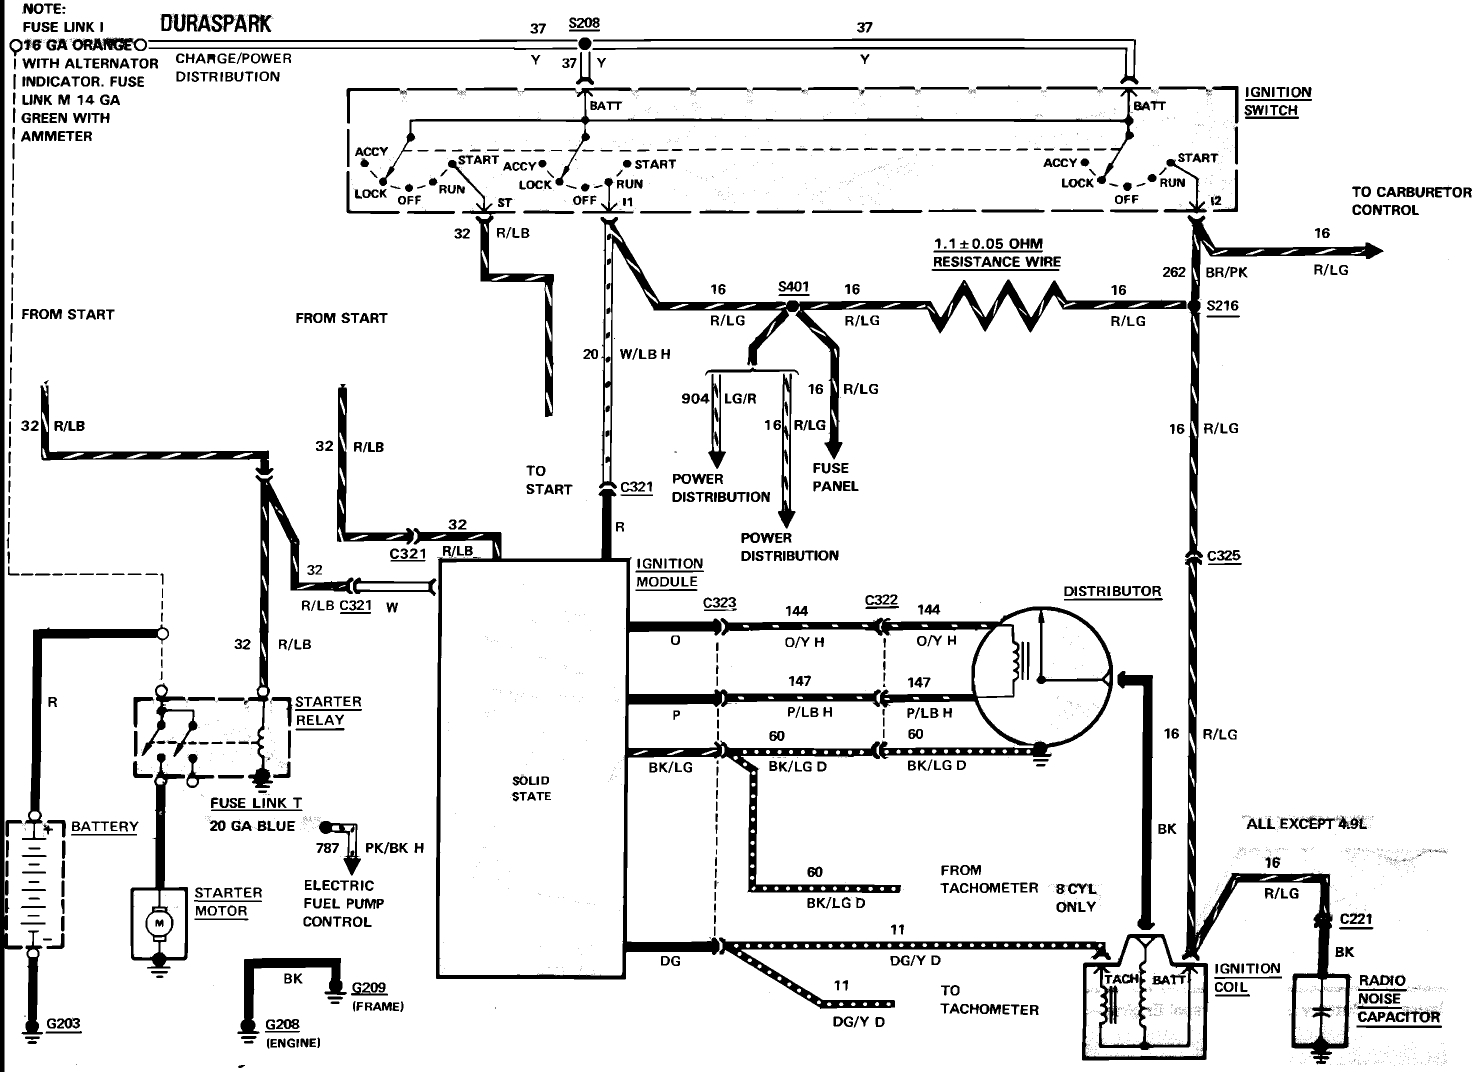 1989 ford f150 ignition wiring diagram | free wiring diagram ford f 150 ignition coil wiring diagram 1990 ford f 150 ignition module wiring diagram